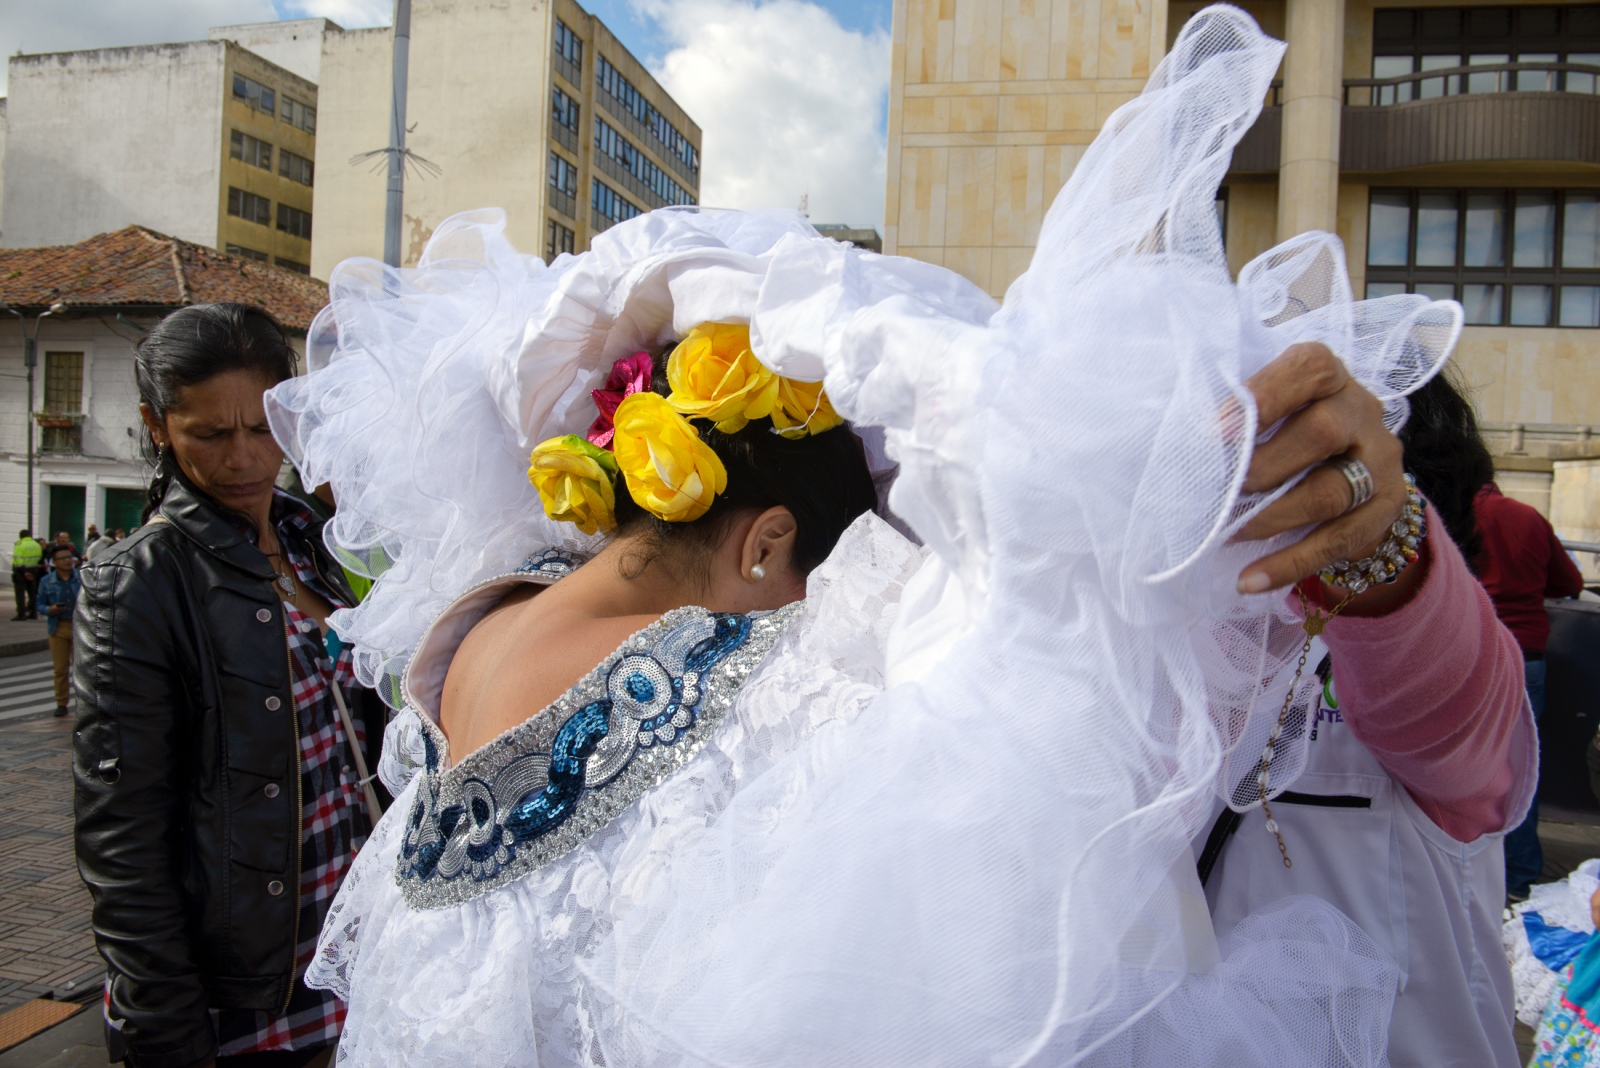 (EN) May 17, 2018 - Bogota, Colombia. A dancer from the Agrupación Artística Tierra de Promisión from Neiva is getting ready to perform during the closing rally of the Colombian presidential candidate Gustavo Petro. (ES) 17 de mayo, 2018 - Bogotá, Colombia. Una bailarina de la Agrupación Artística Tierra de Promisión de Neiva se arregla para la presentación durante  el cierre de campaña del candidato a la presidencia Gustavo Petro.